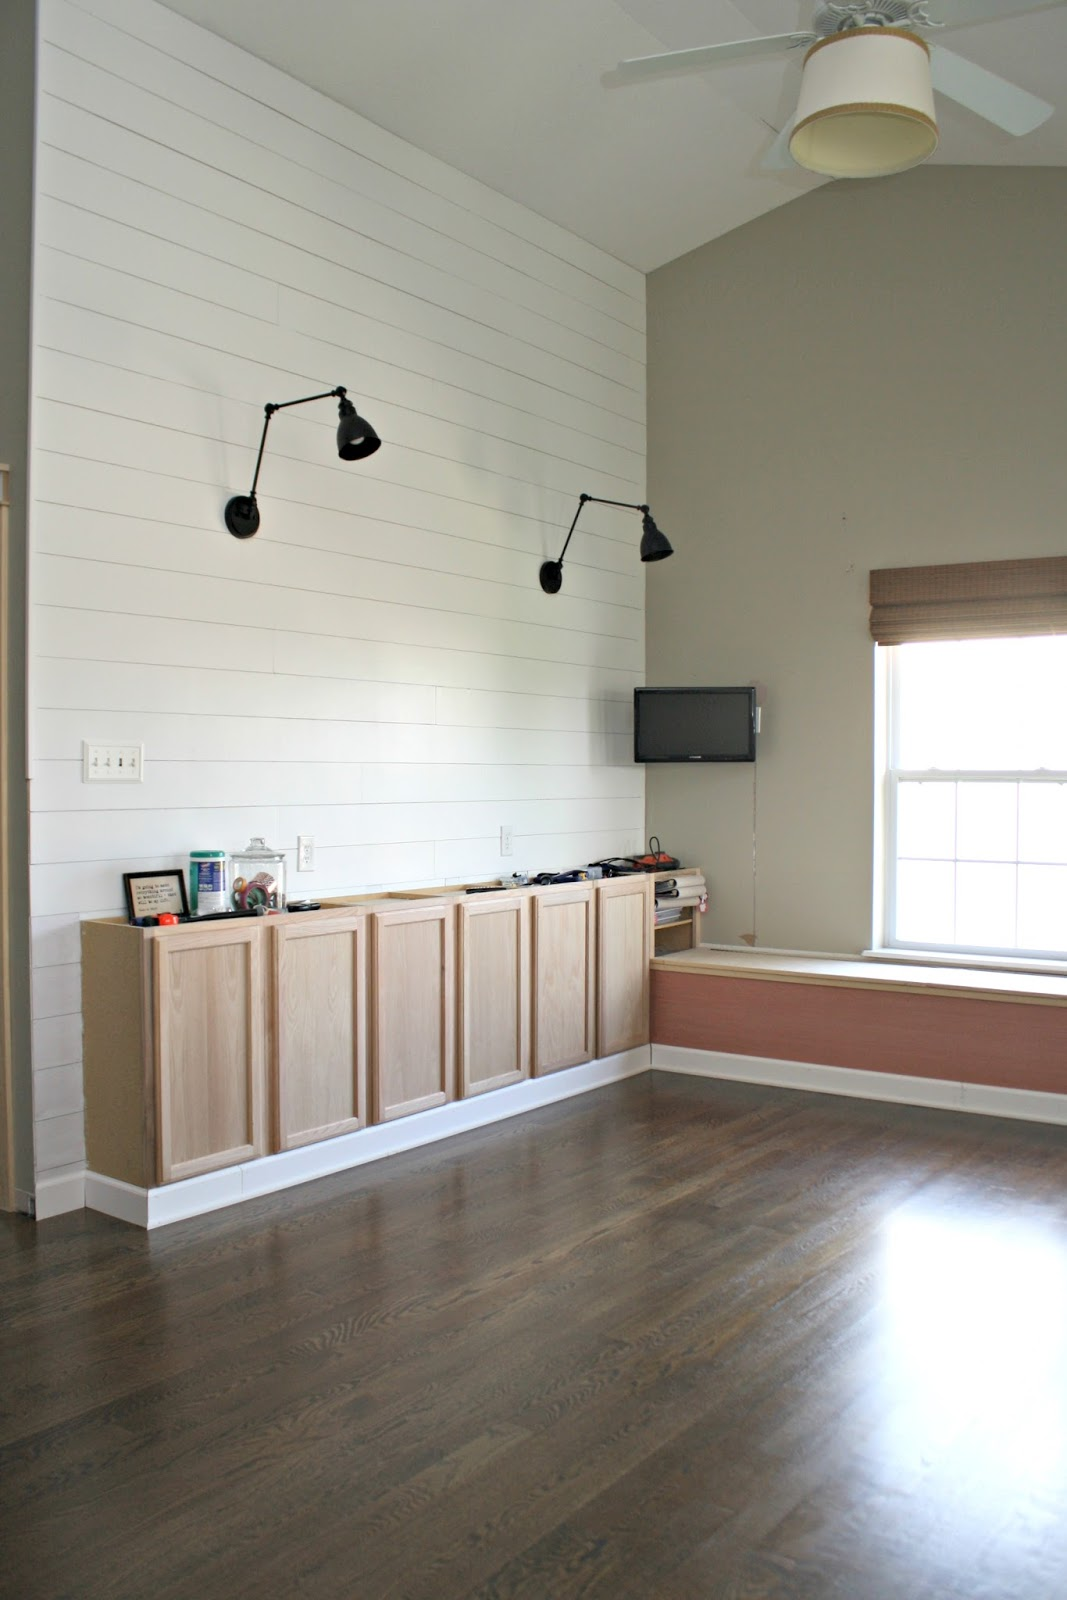 How to add the shiplap look to